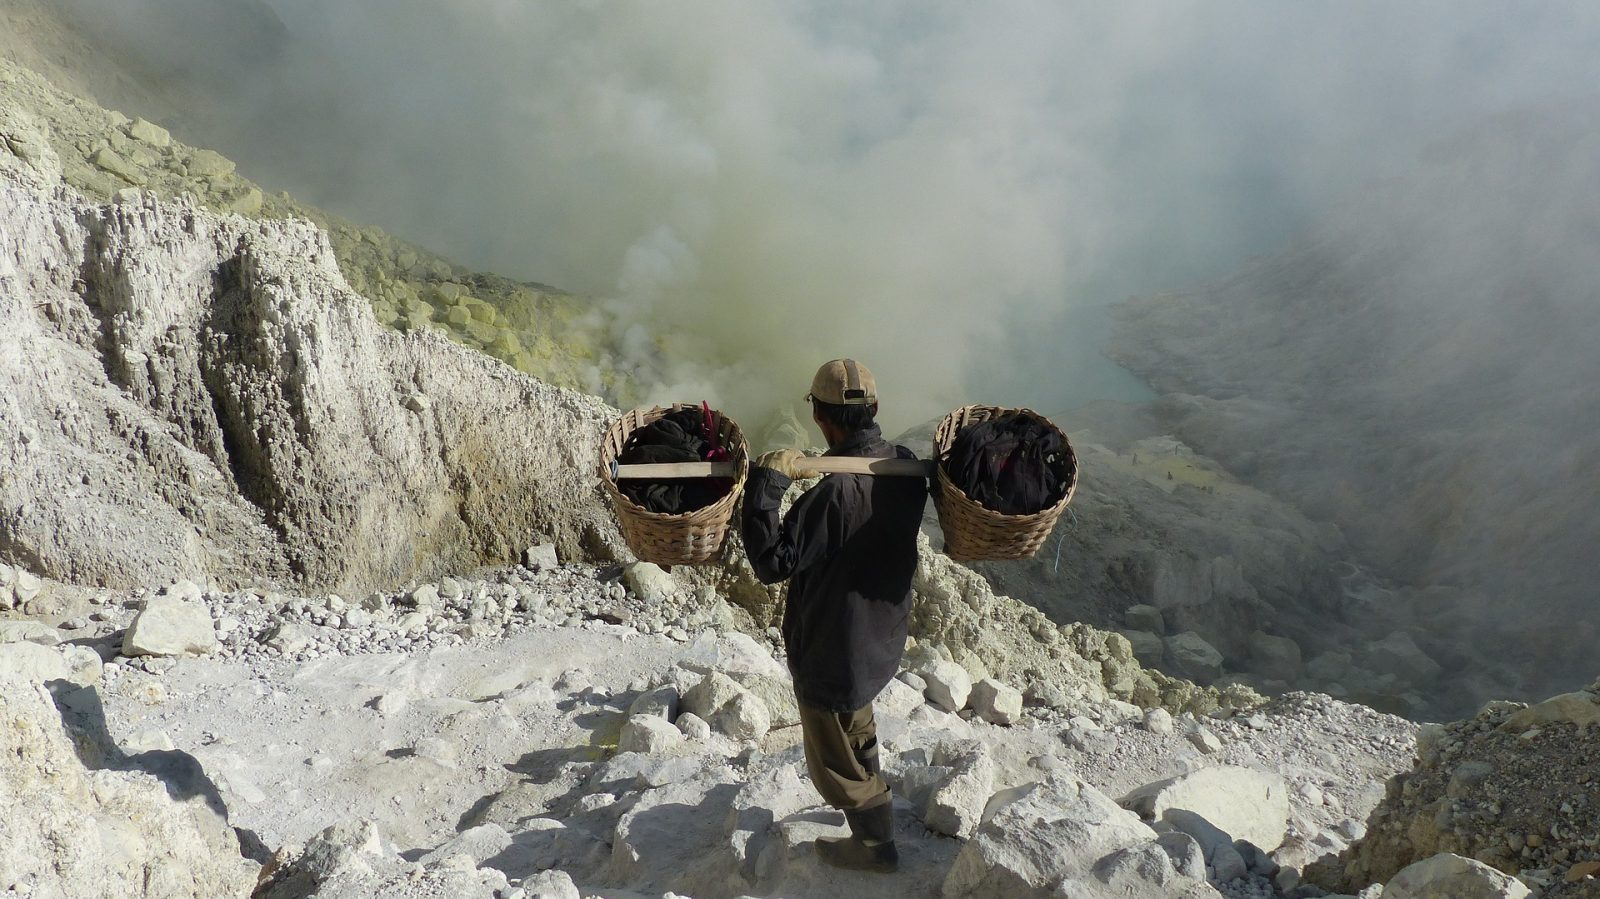 Descending toward the Ijen Crater, East Java, Indonesia